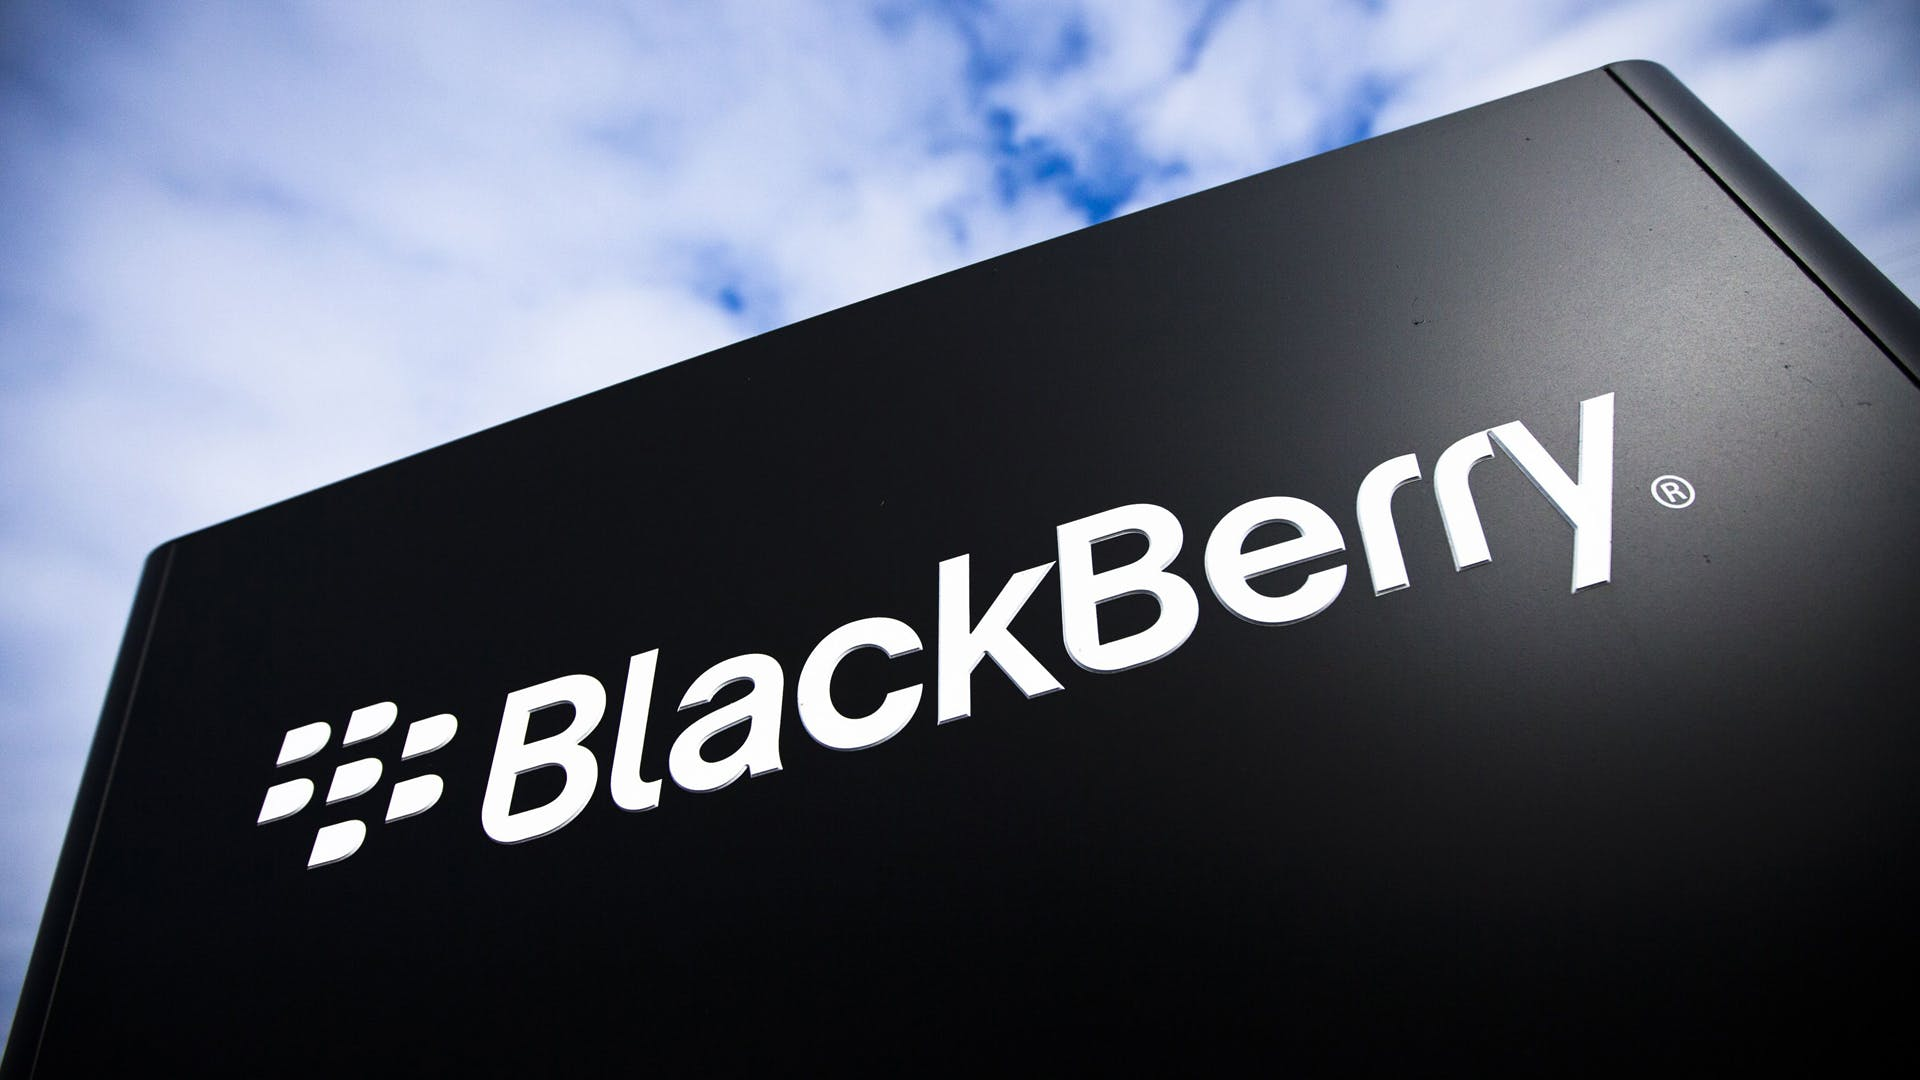 The End of BlackBerry: Iconic Phones We Won't Forget